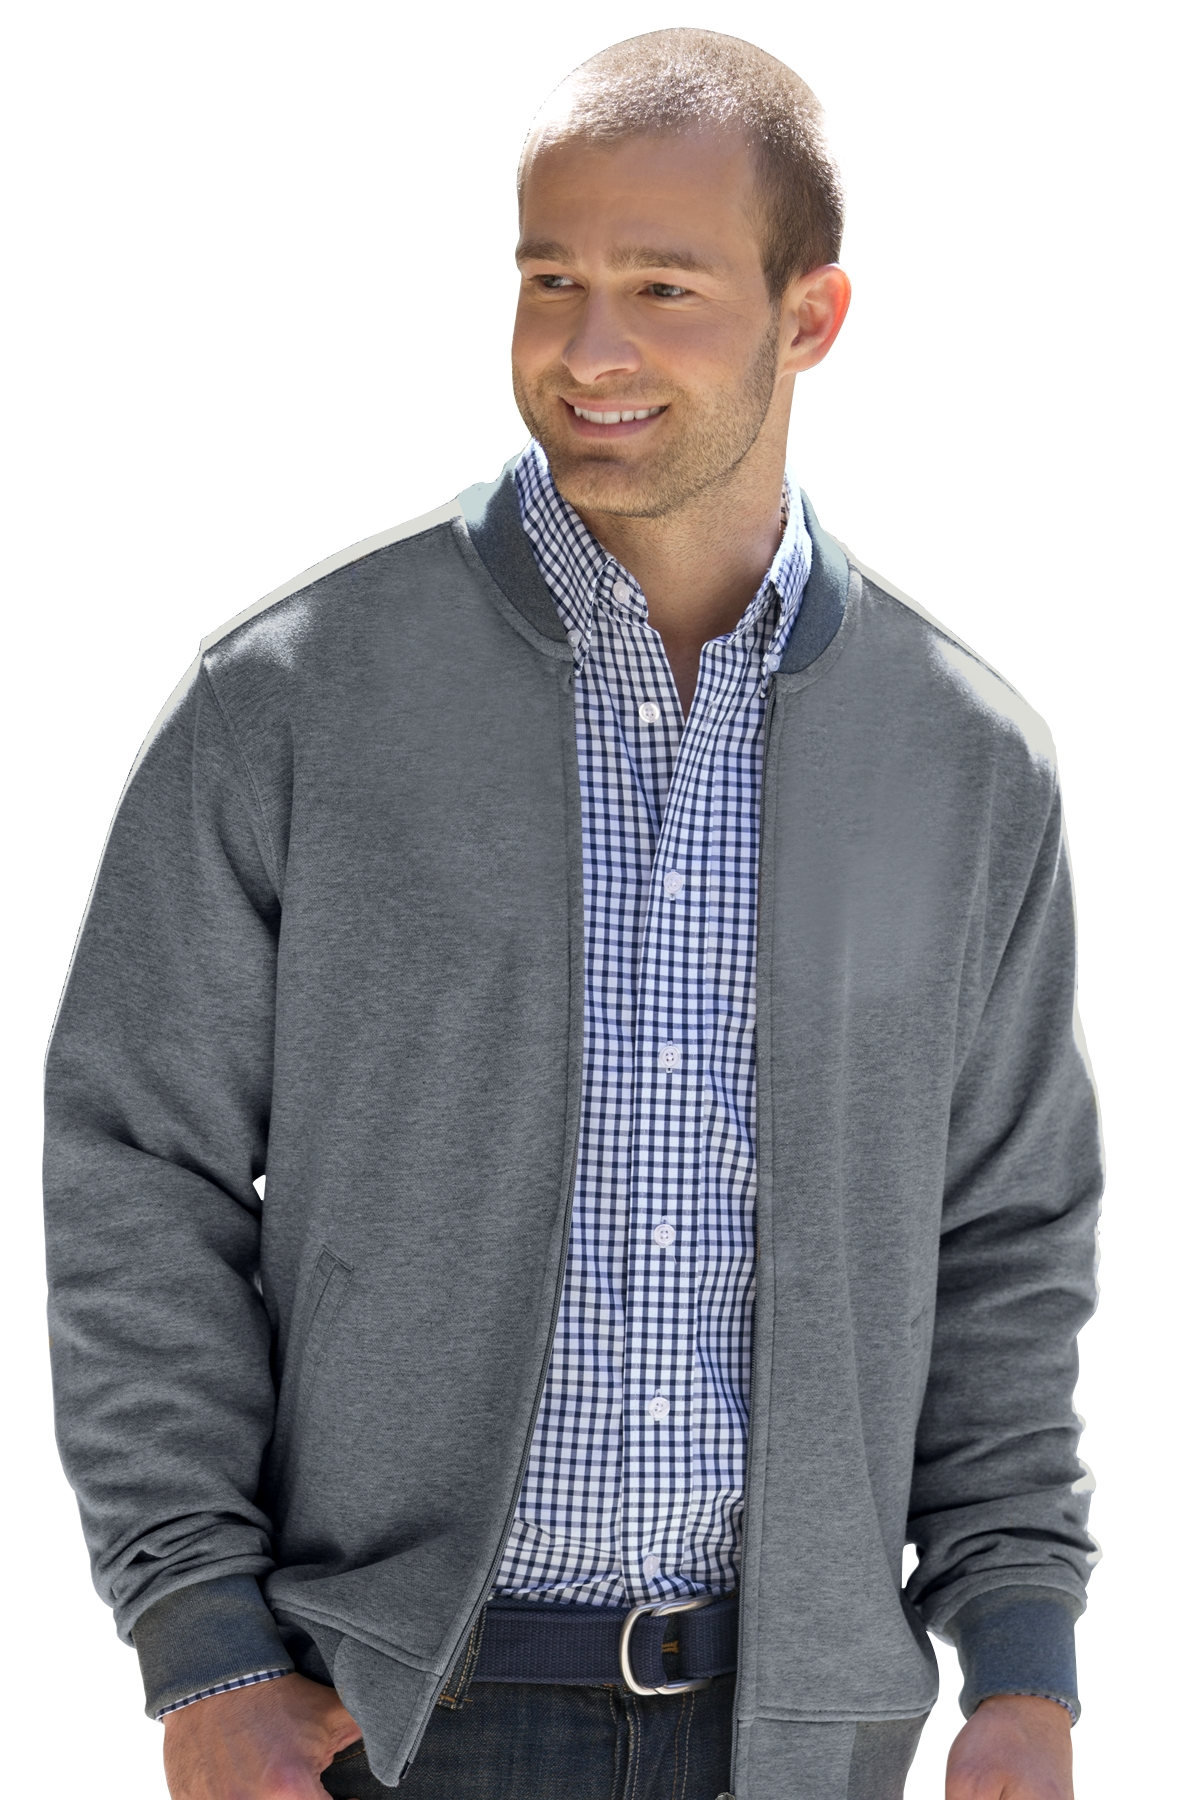 Vantage 3297 - Men's Game Day Varsity Jacket